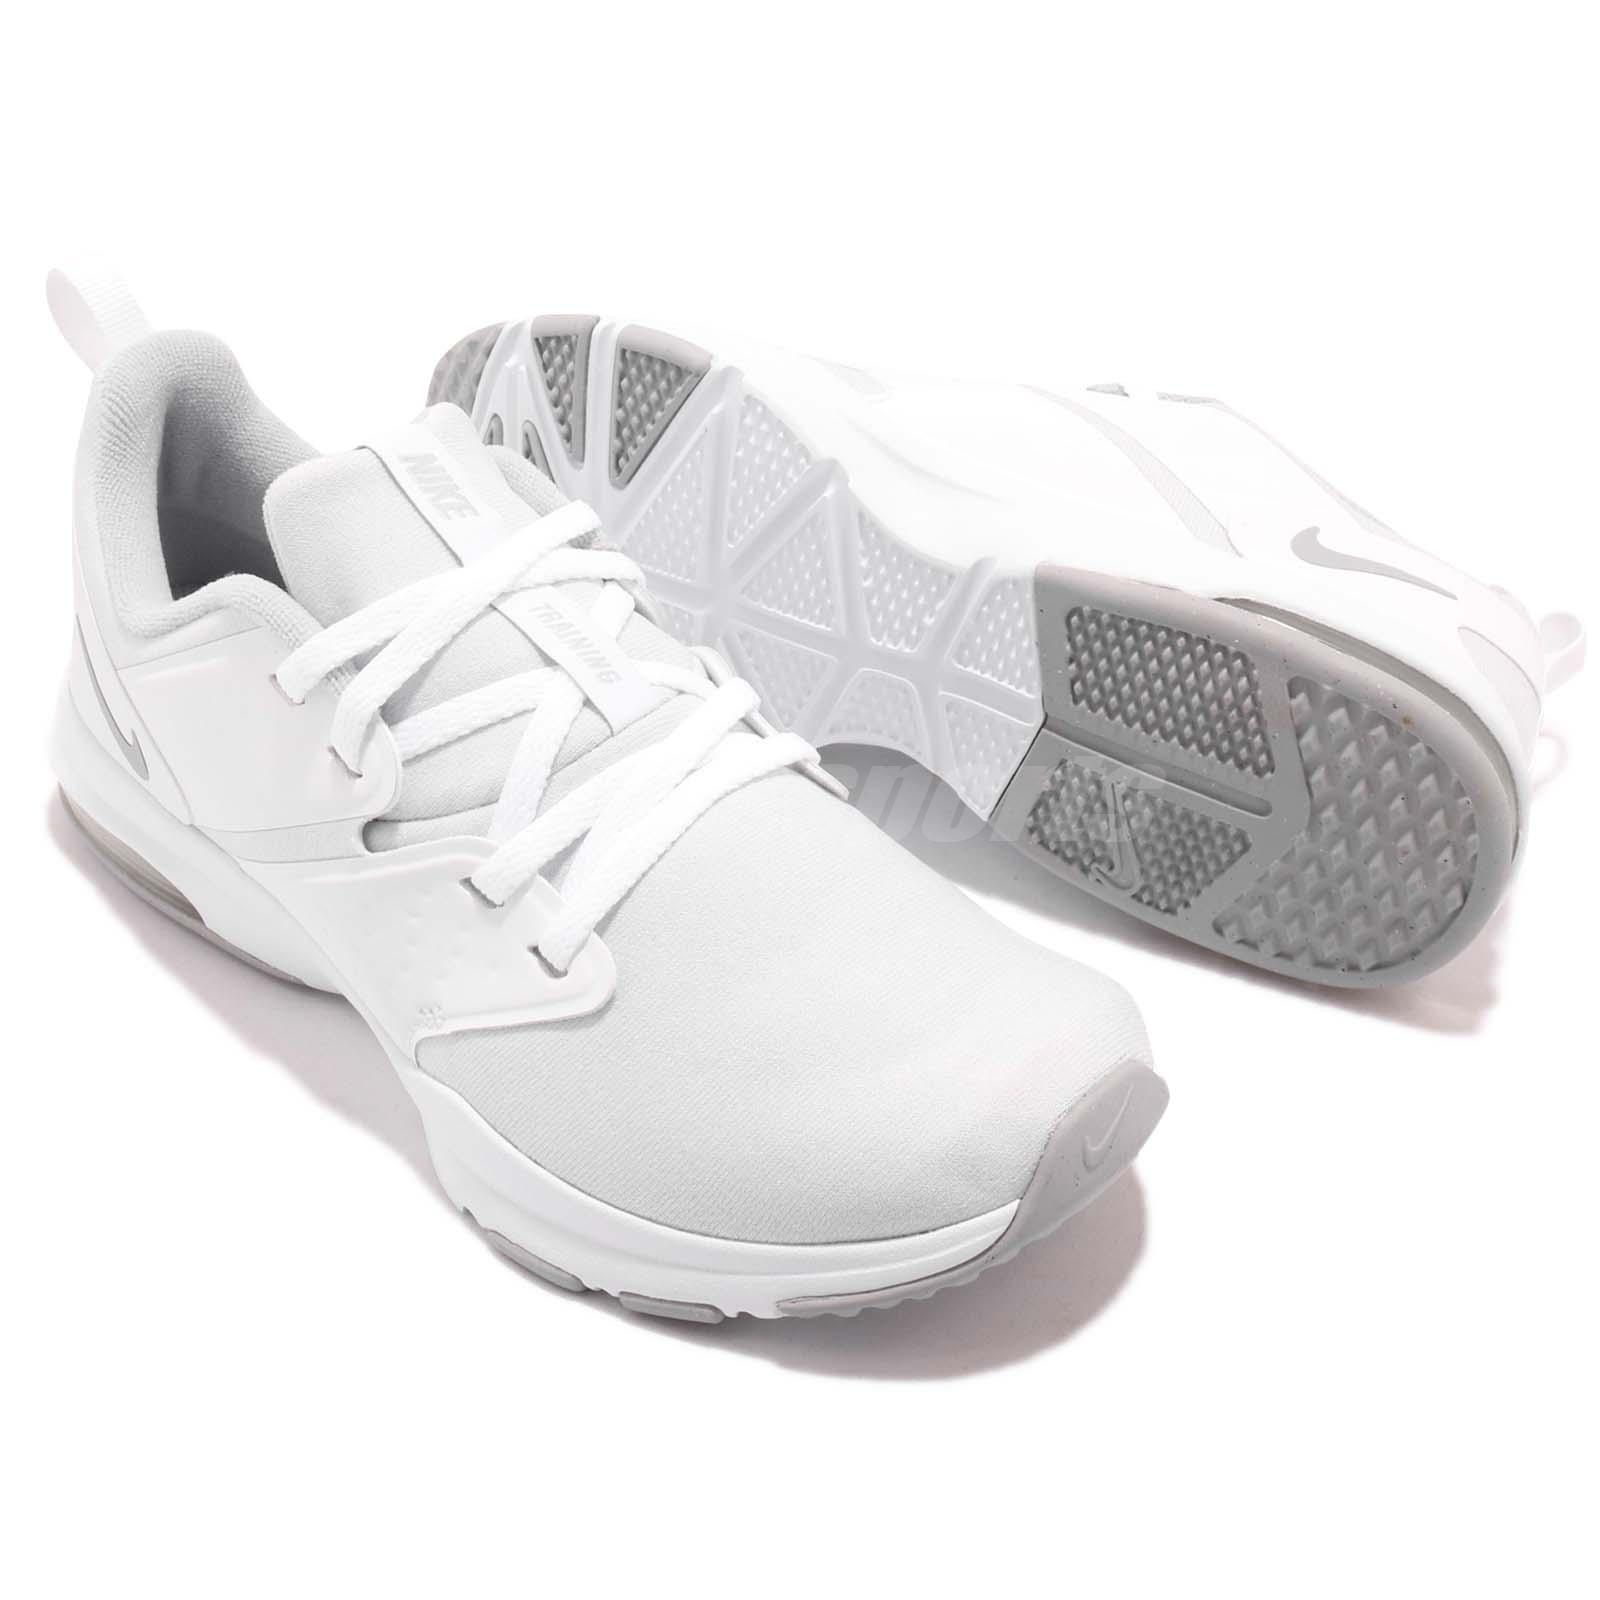 low priced a63fb d062b Nike Wmns Air Bella TR White Cool Grey Women Cross Training Shoes ...